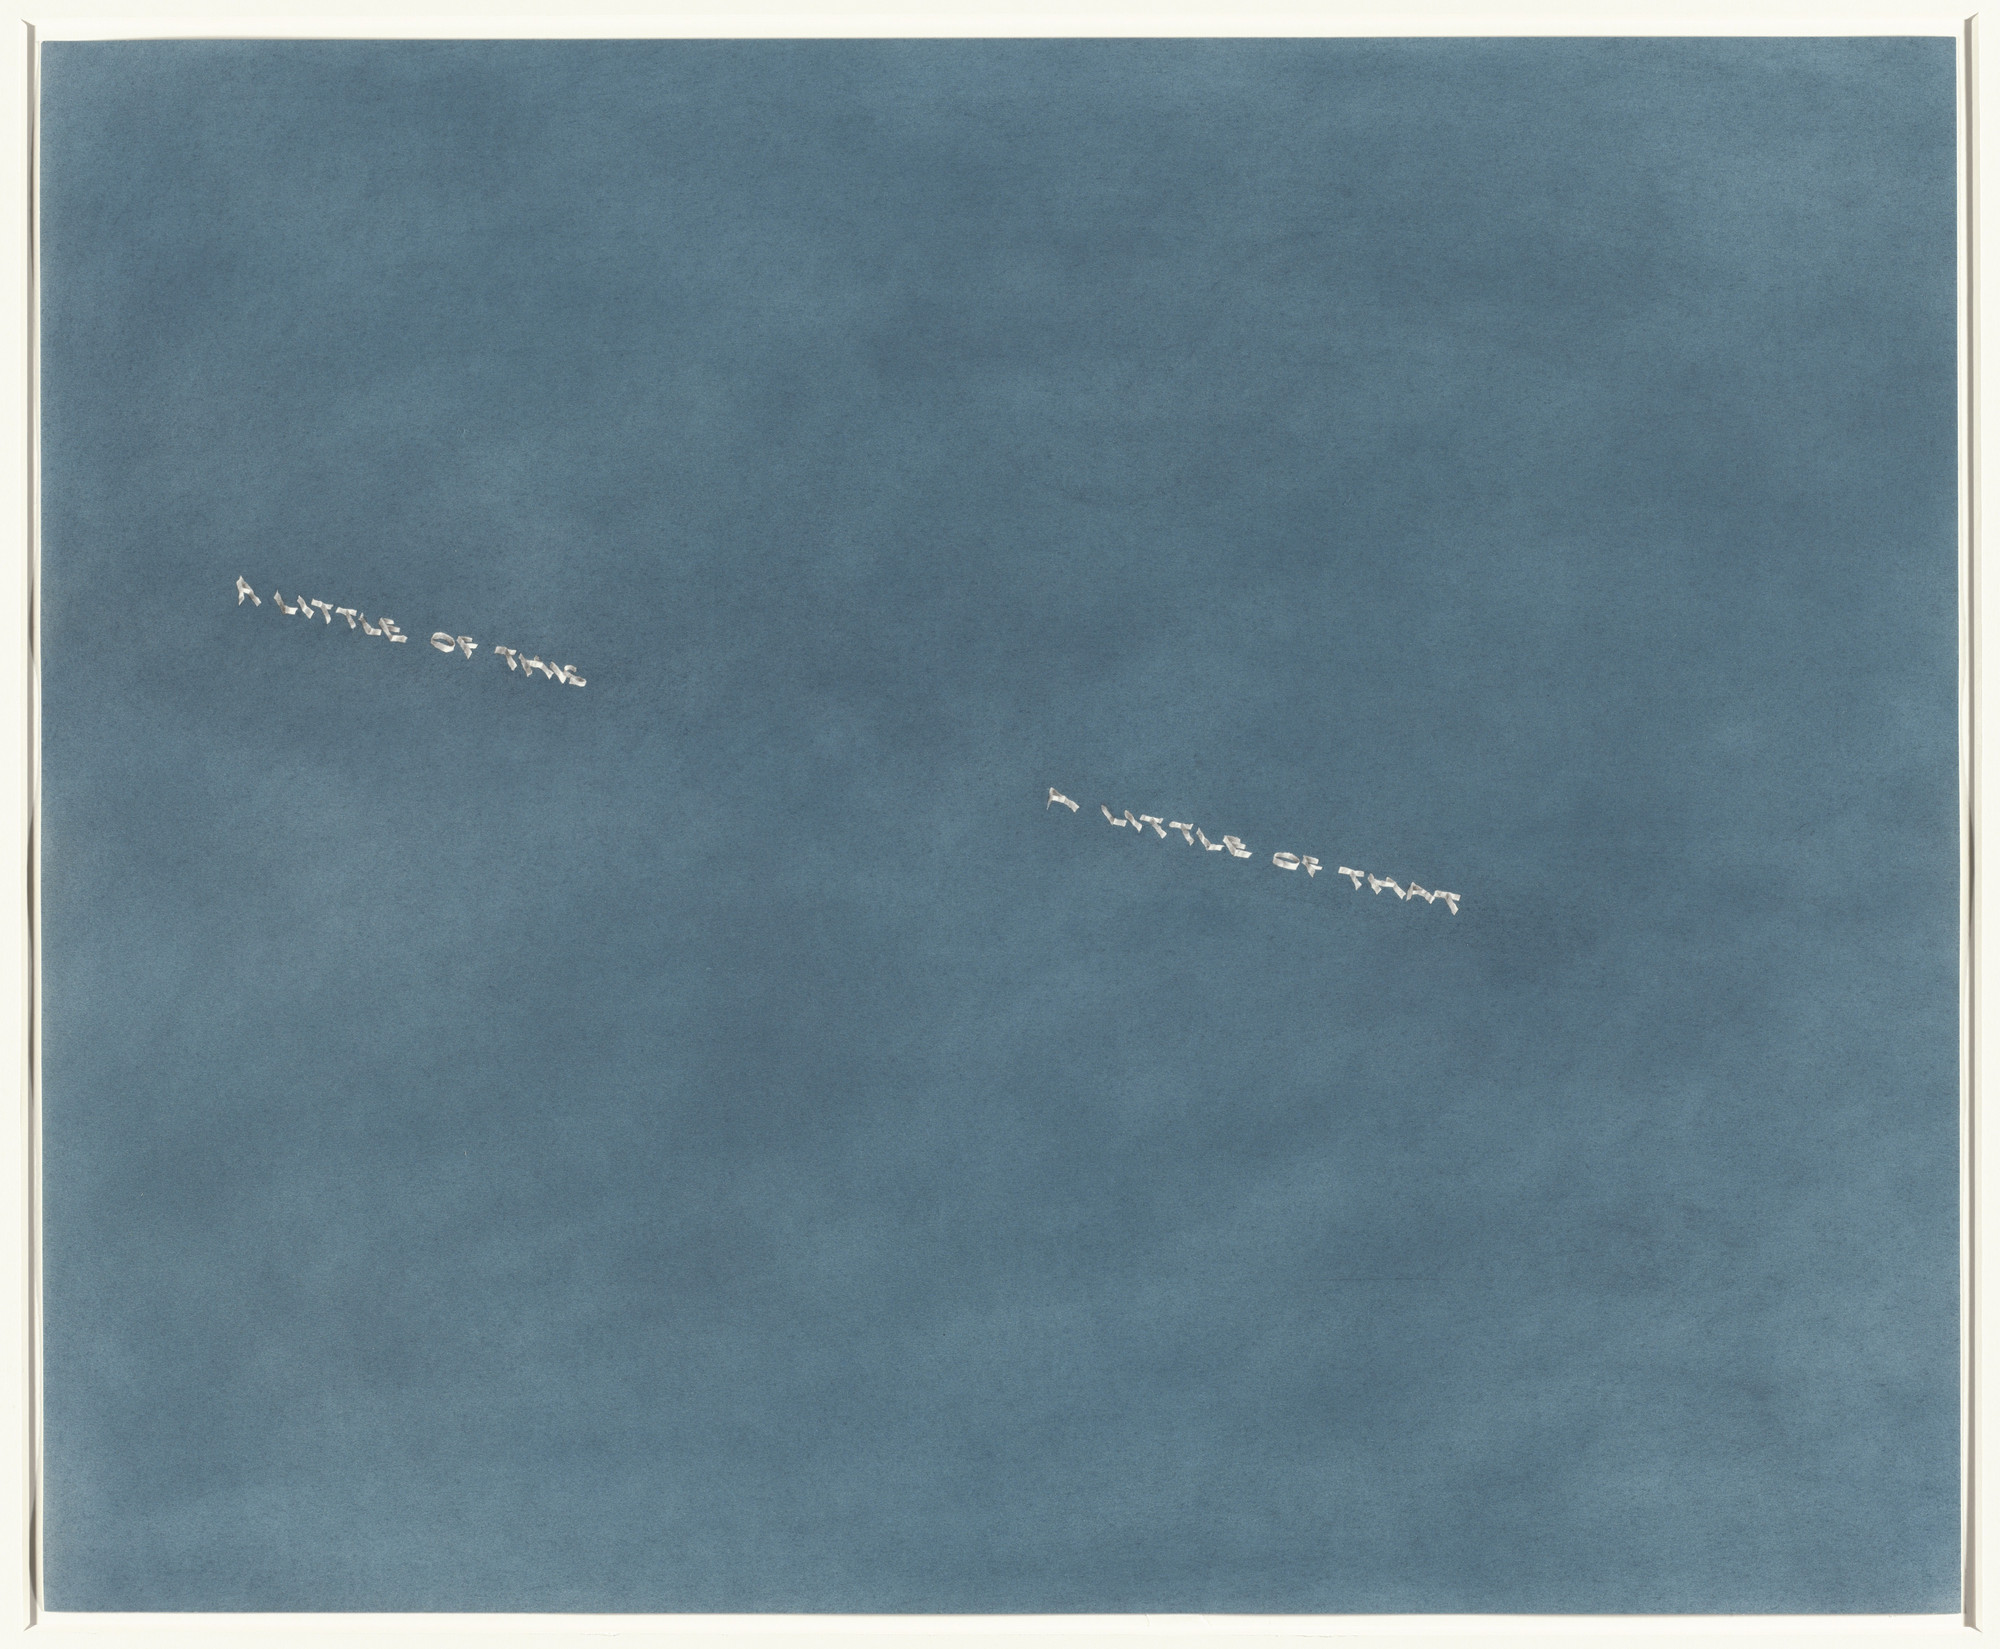 Edward Ruscha. A Little of This, A Little of That. 1975